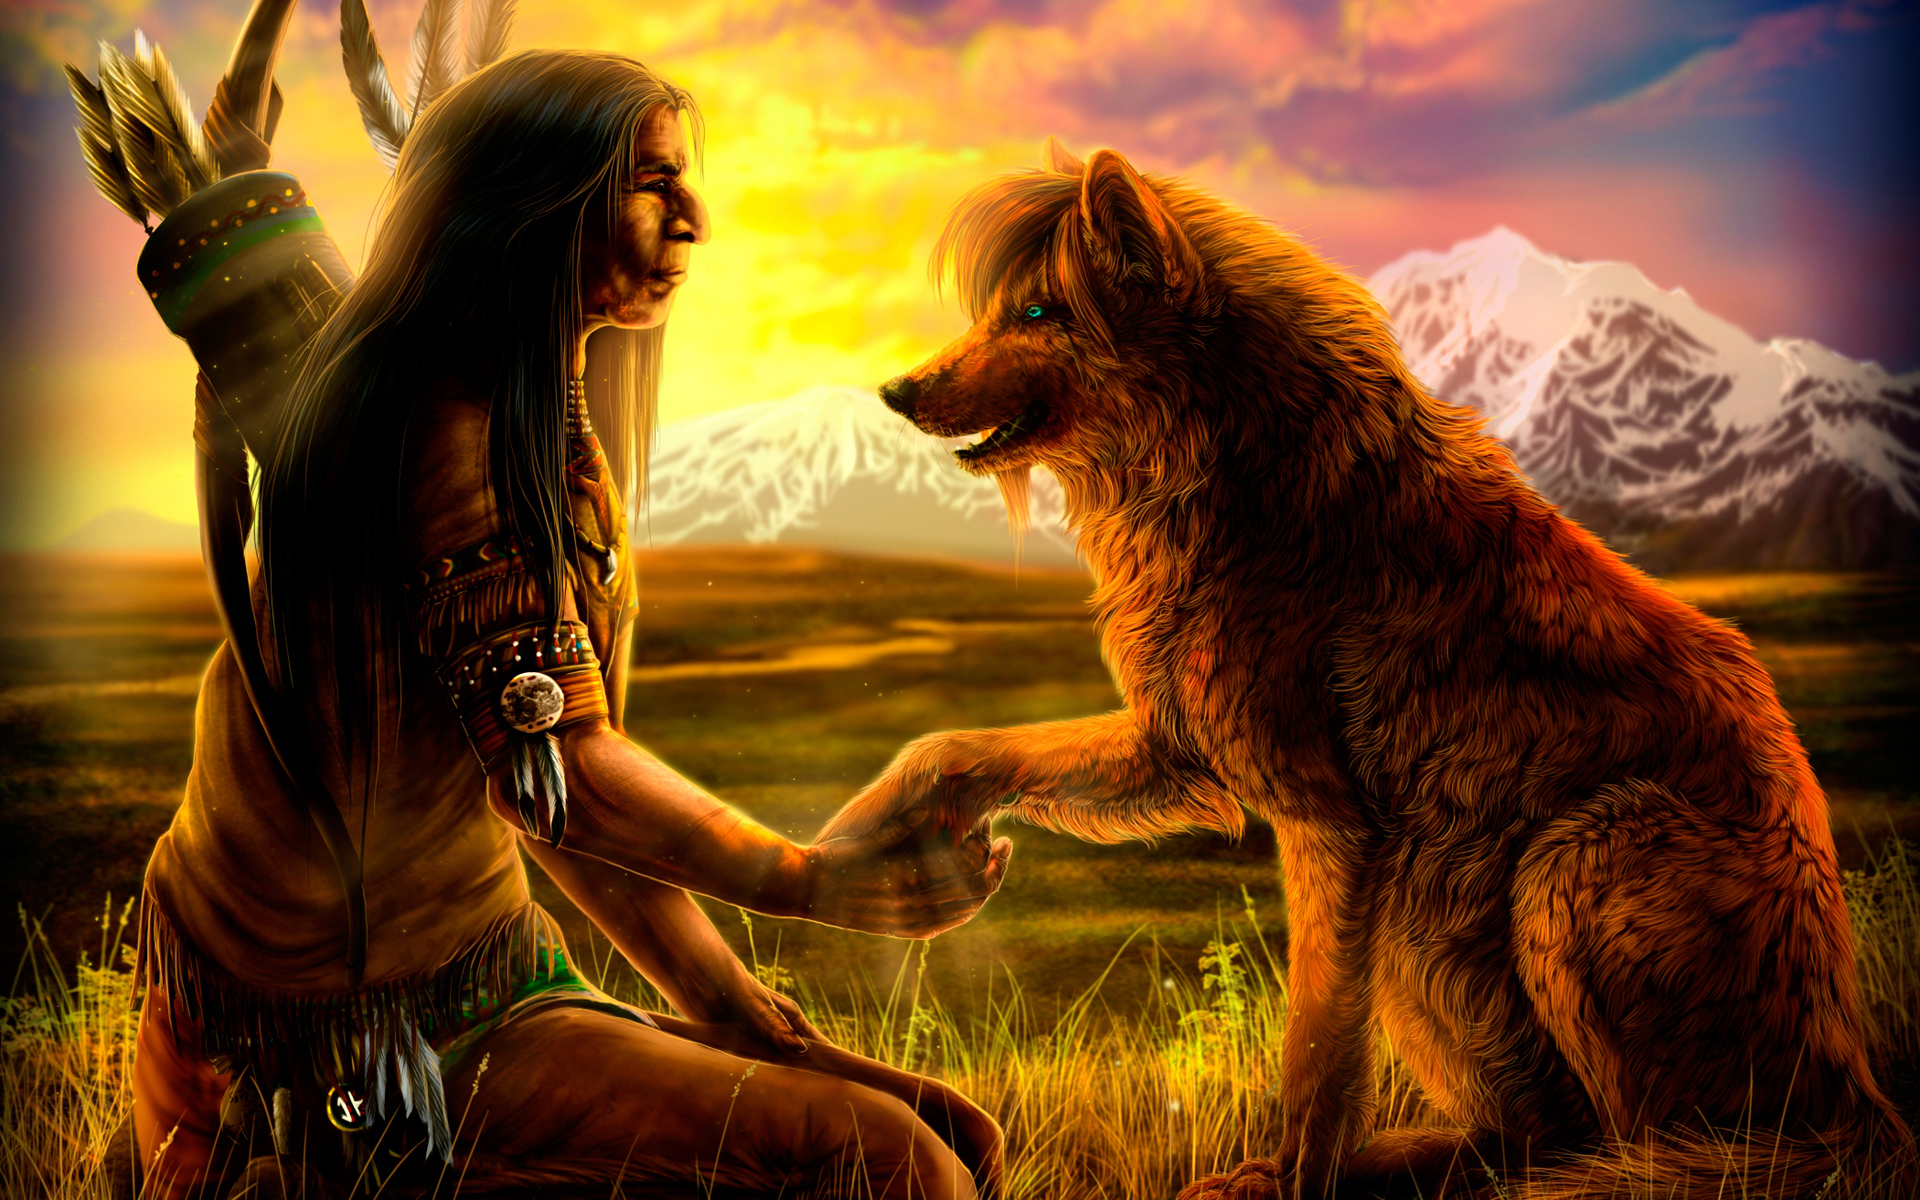 Native American Day Holiday Holidays 1920x1200 1920x1200